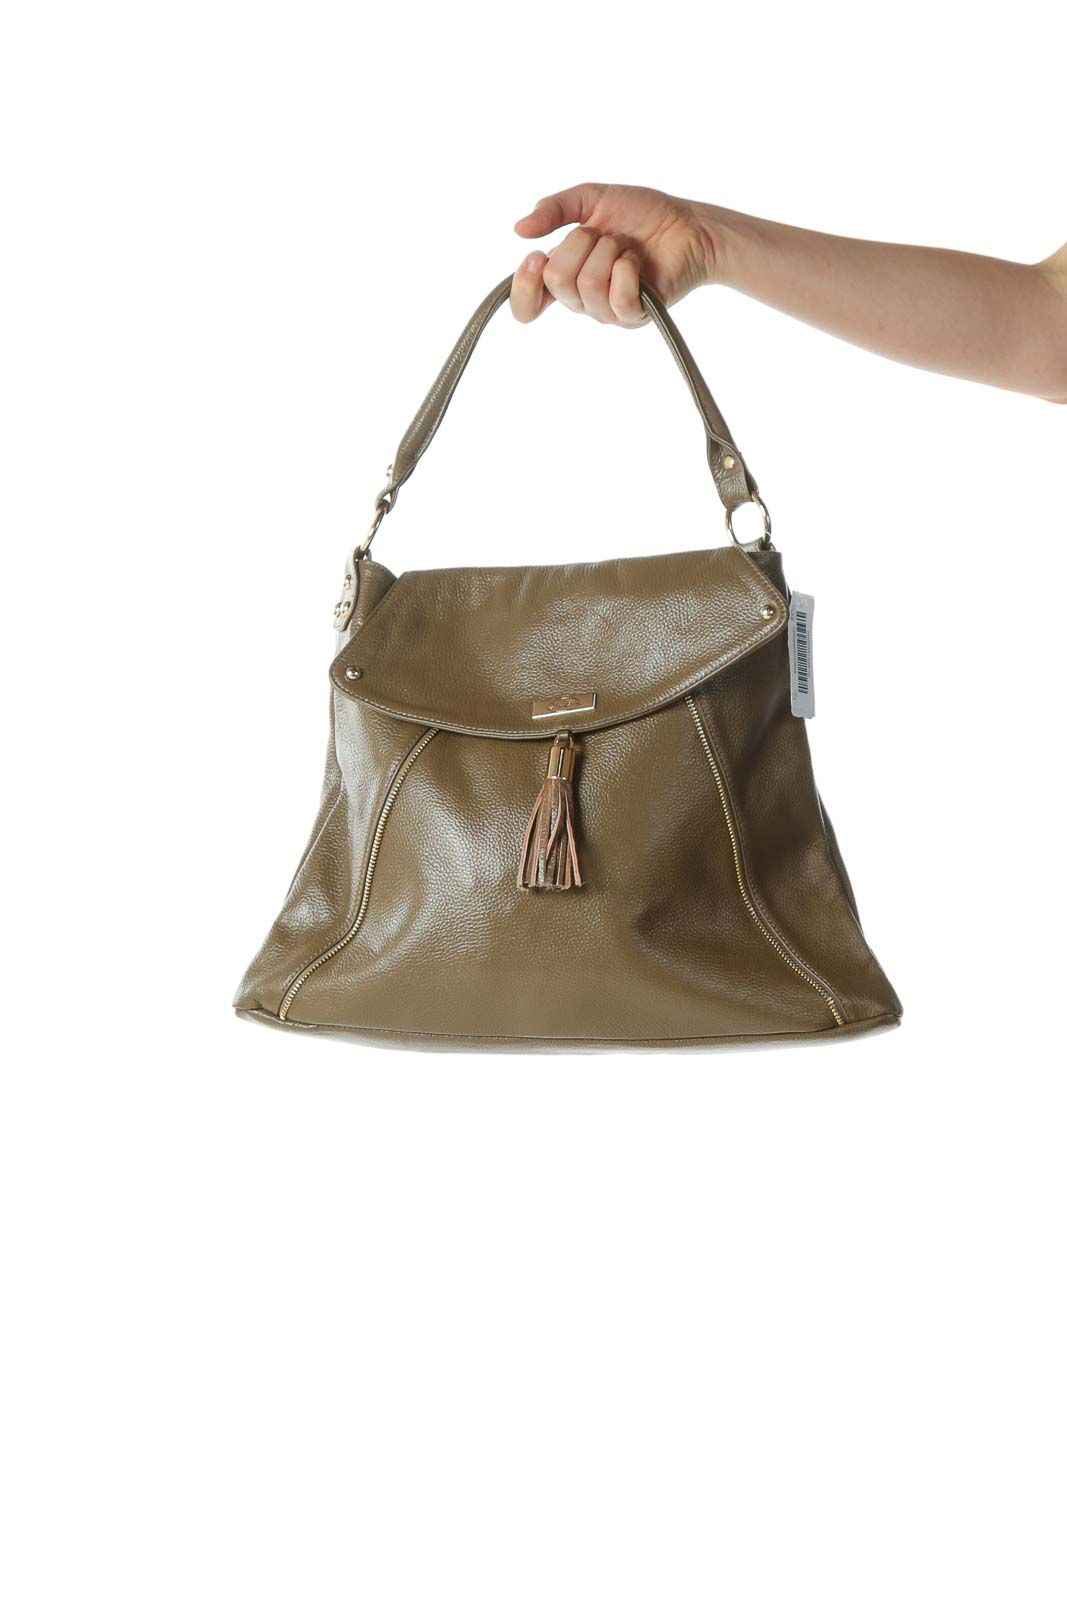 Olive Designer Tassel Shoulder Bag with Zipper and Hardware Embellishments